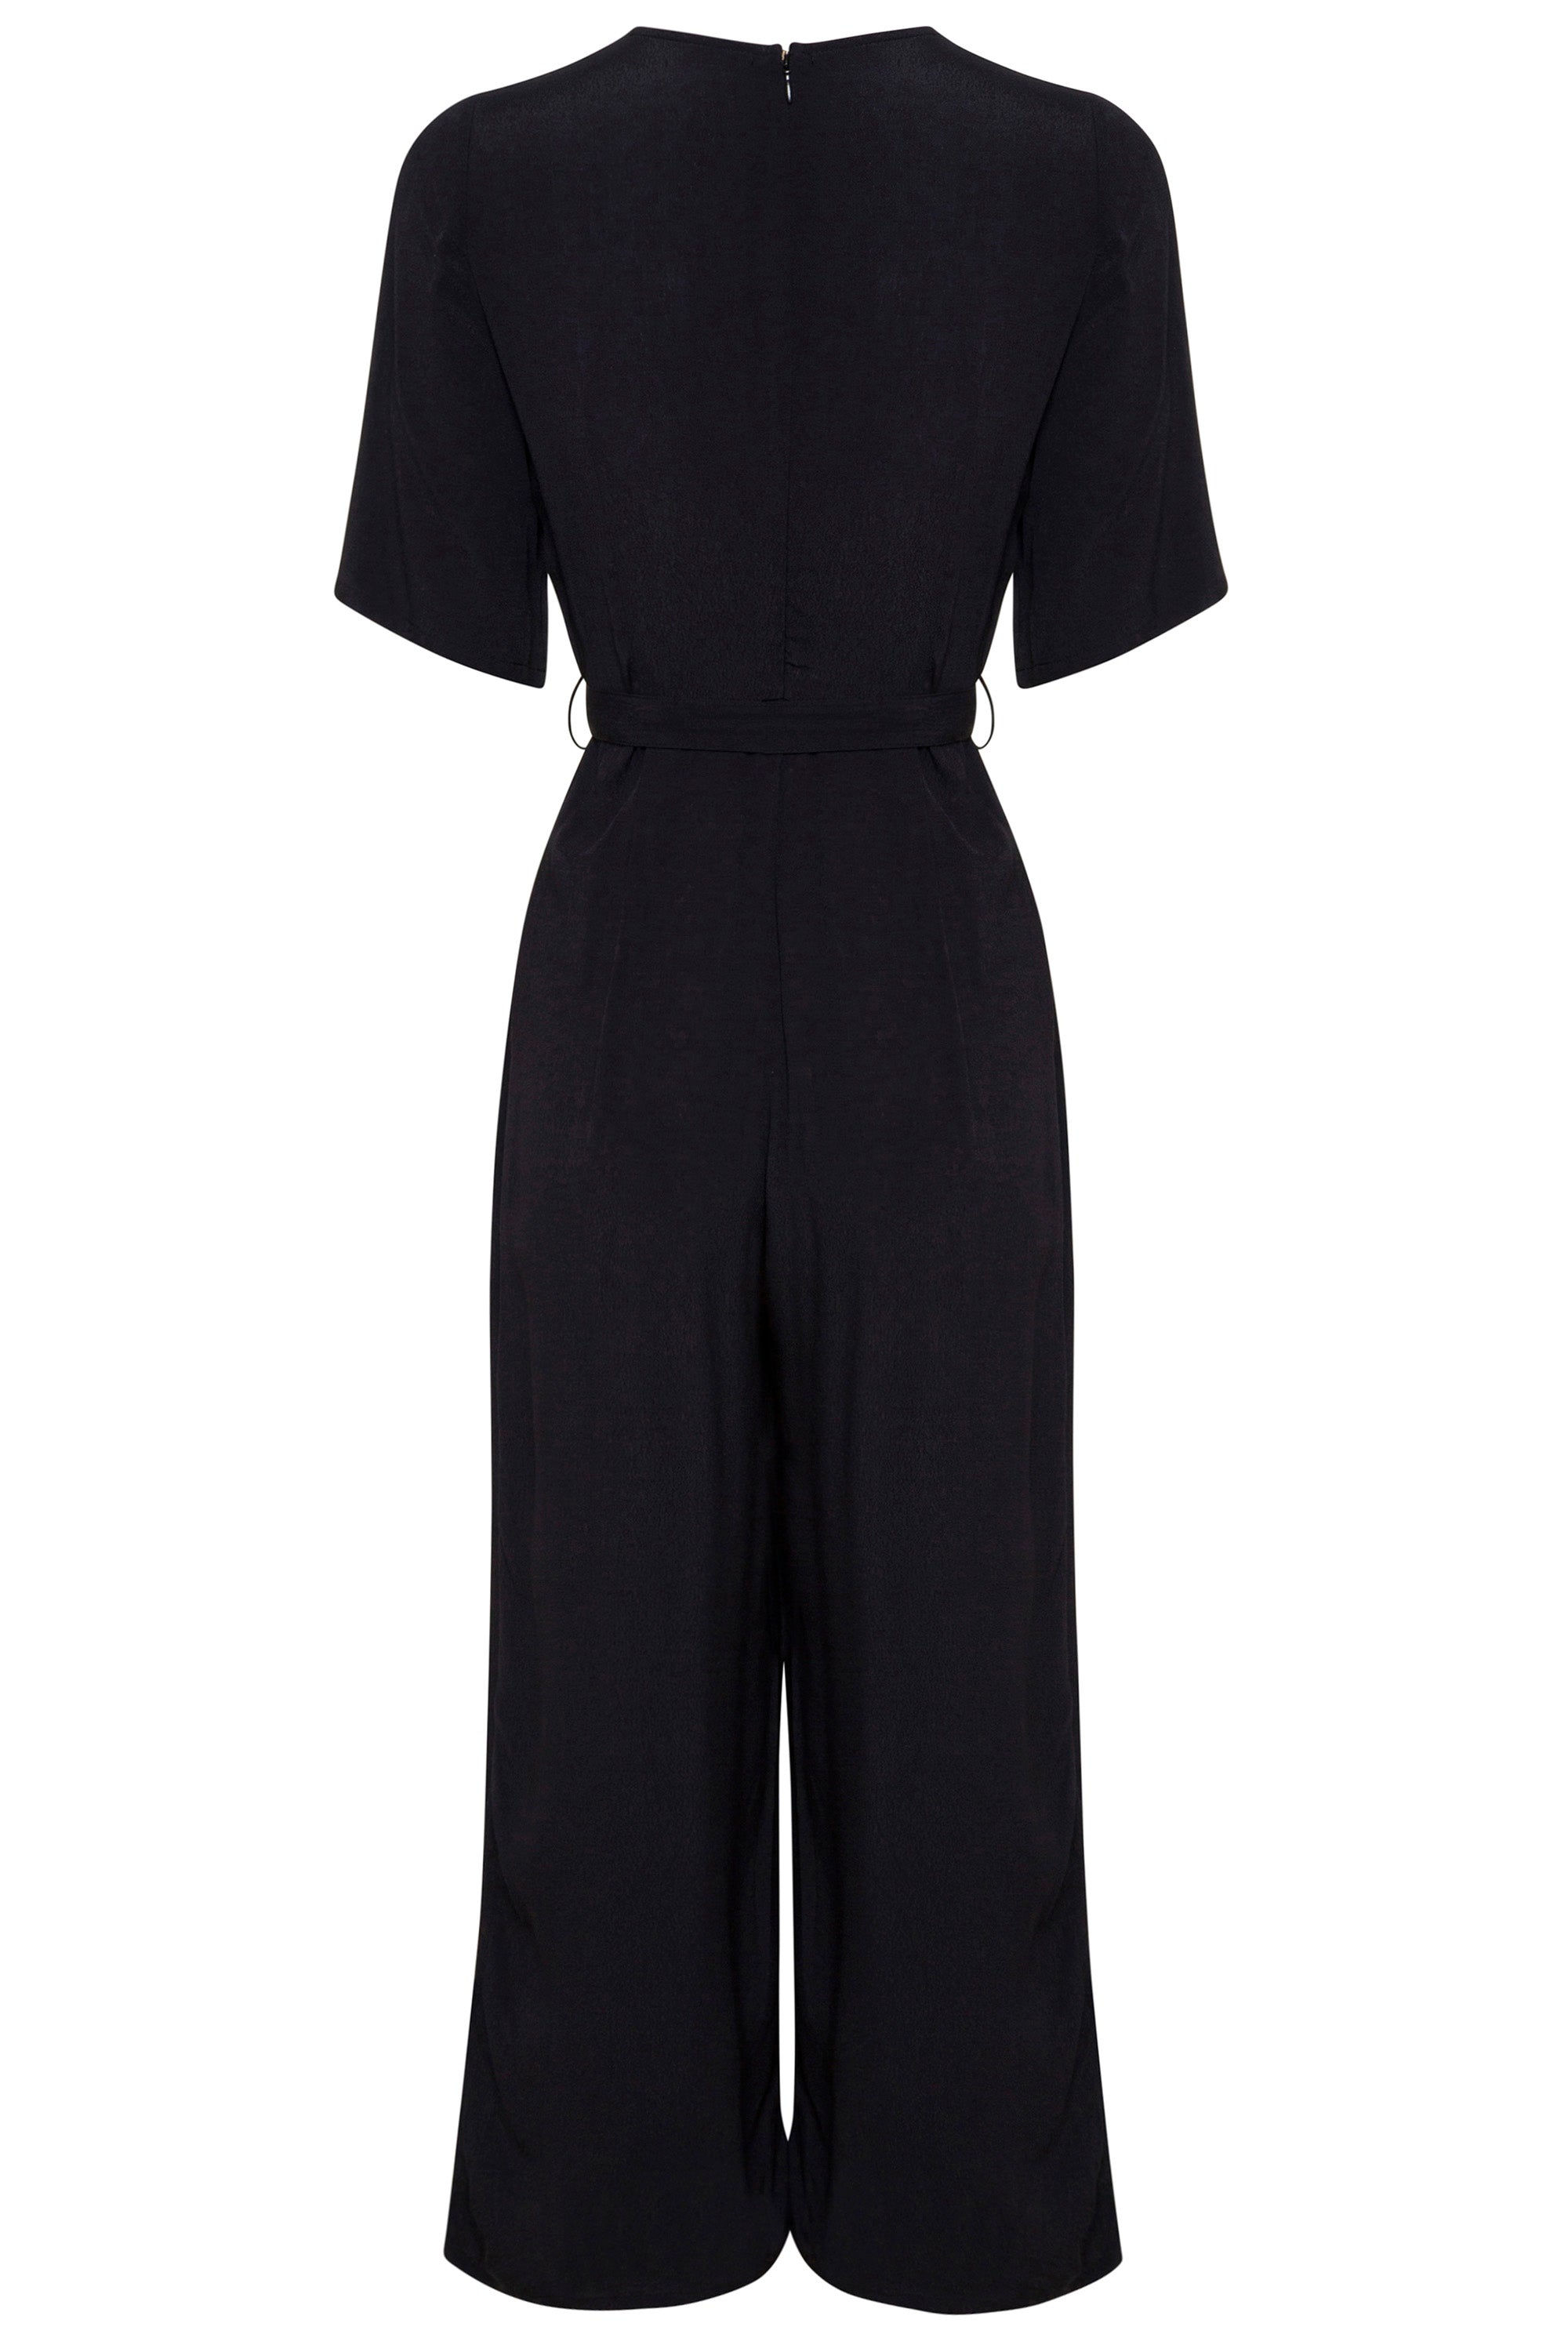 Effie Jumpsuit In Black